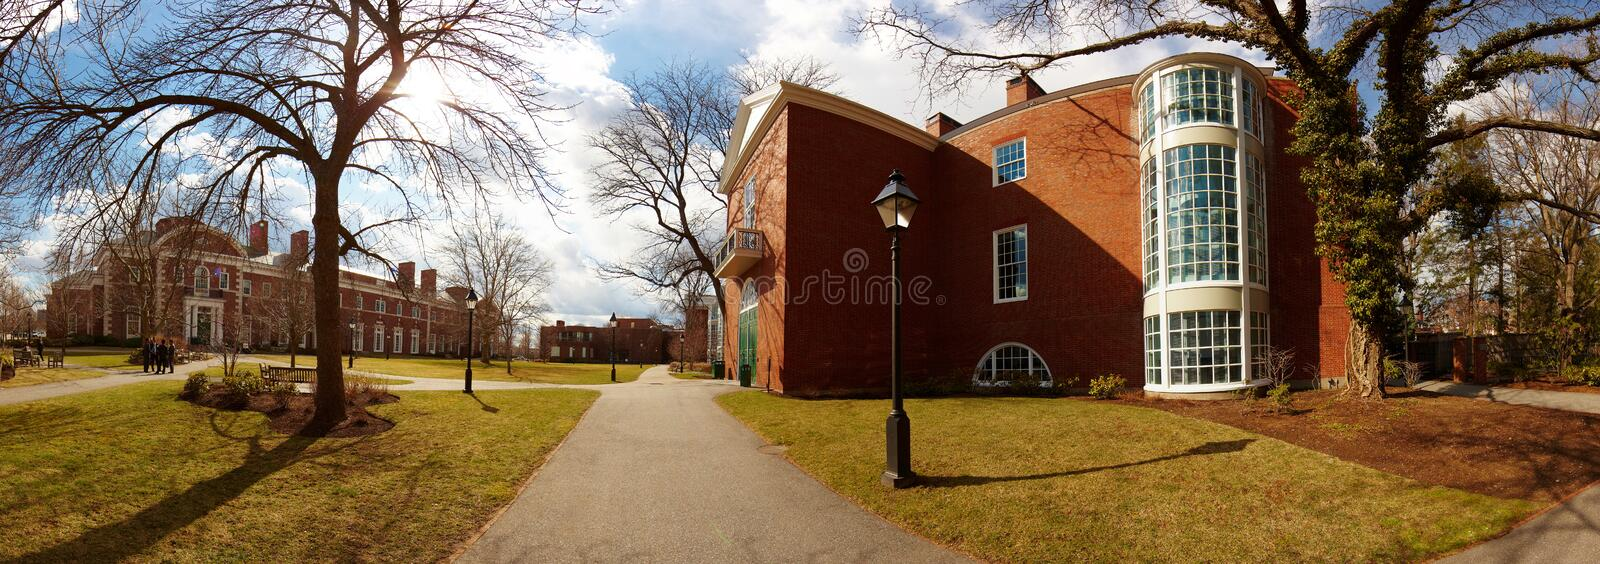 USA, Harvard University, Bloomberg. Harvard University, building facade, Bloomberg, lamppost royalty free stock image